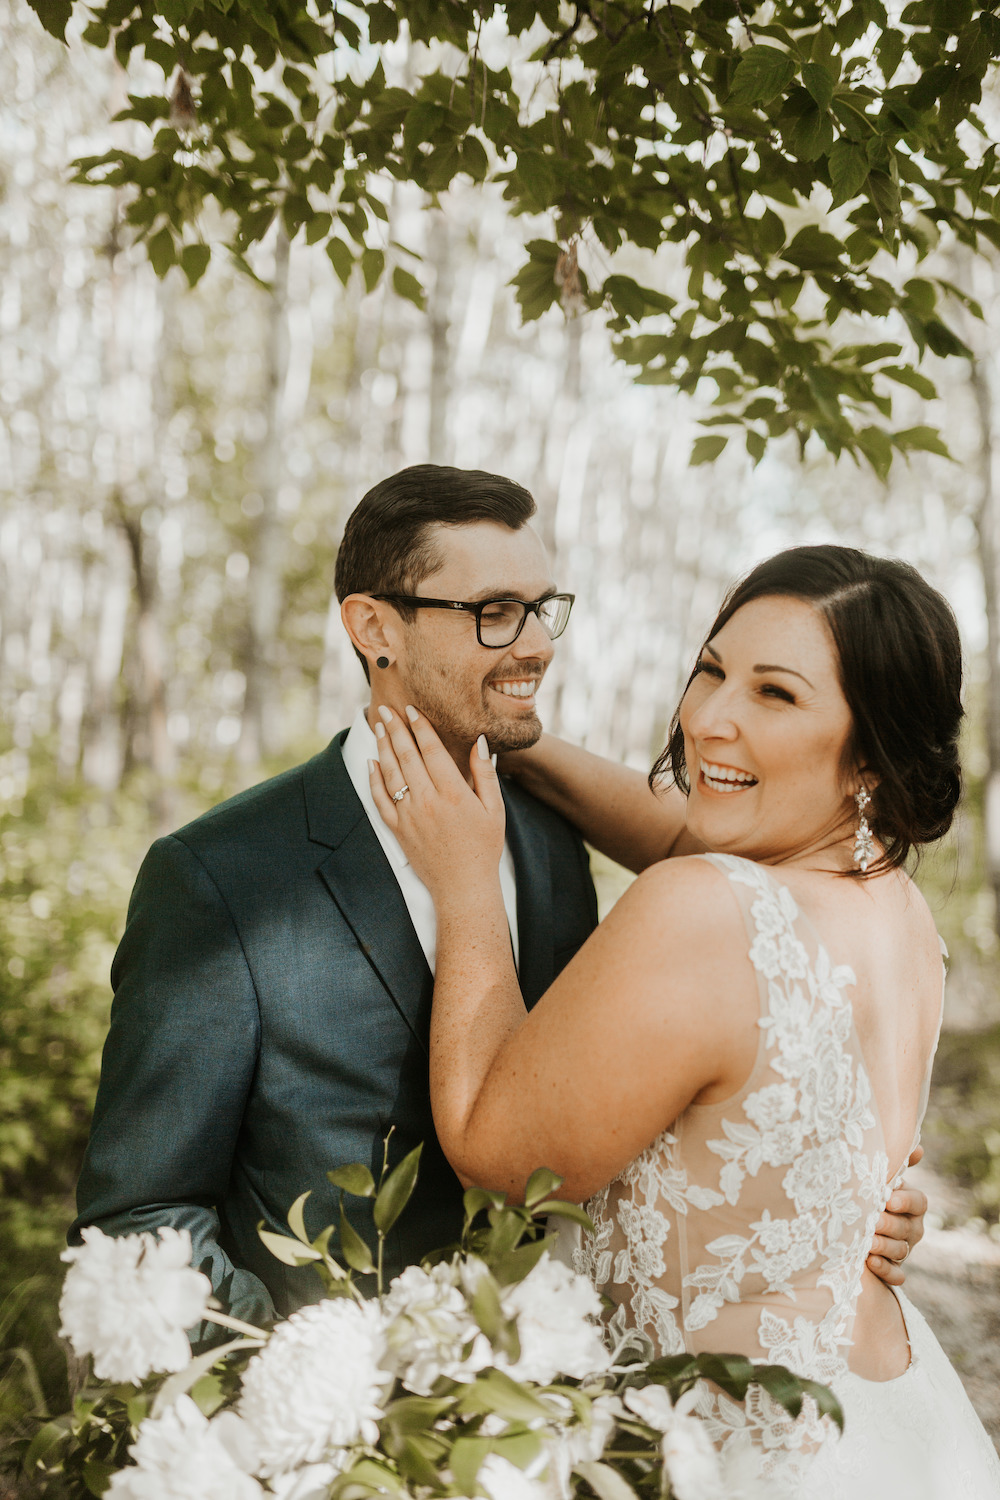 Moody Greenery Wedding - Winnipeg's Top Wedding Florist